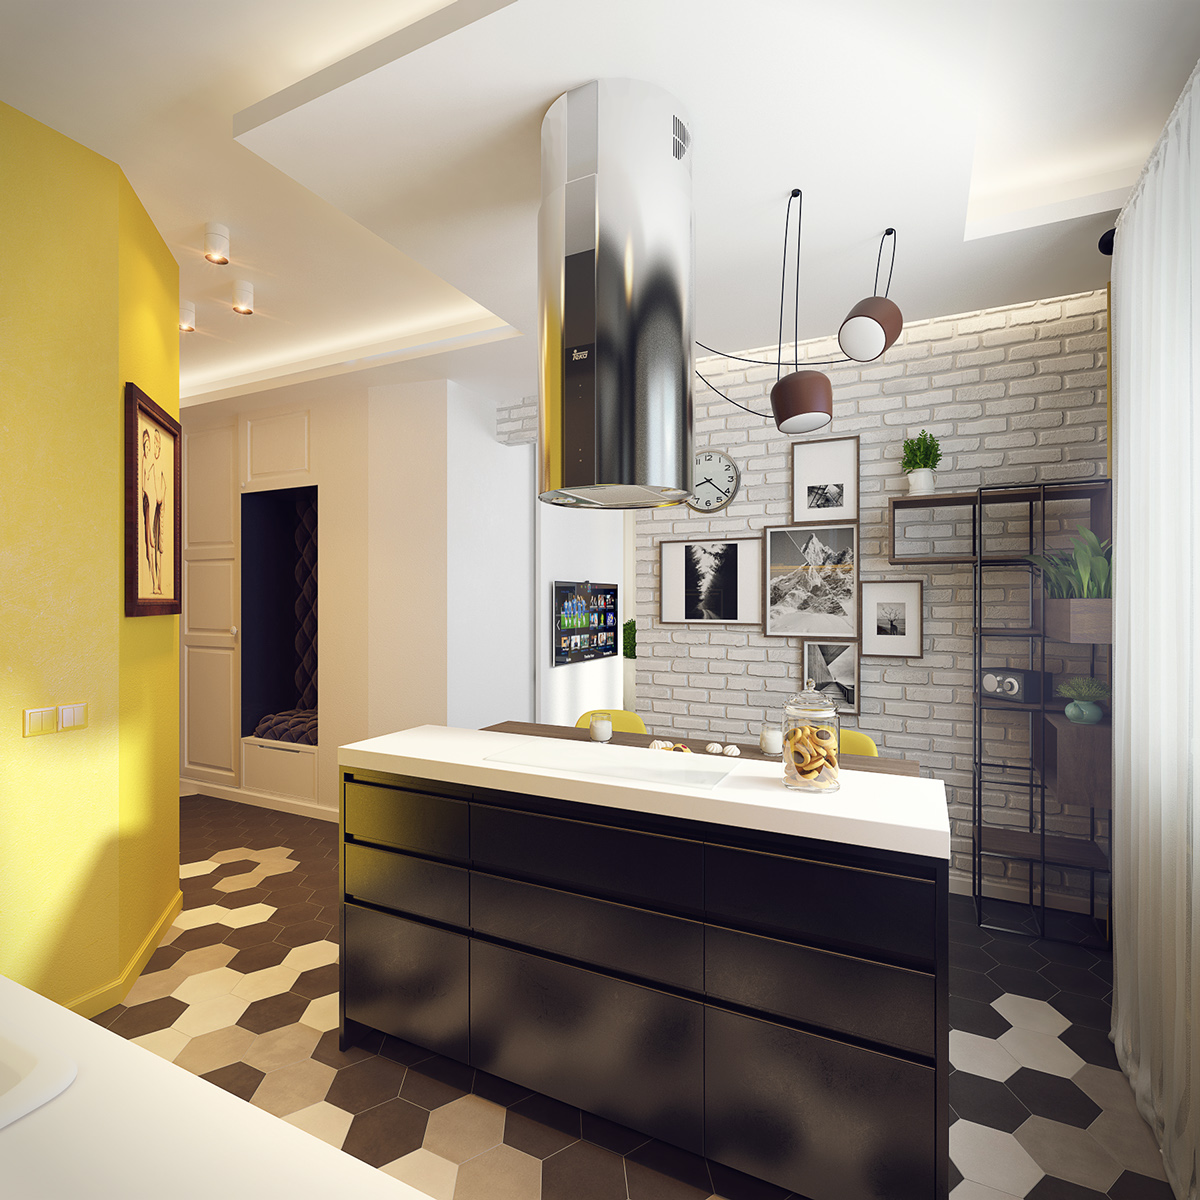 6 Beautiful Home Designs Under 30 Square Meters With: 4 Cute And Stylish Spaces Under 50 Square Meters